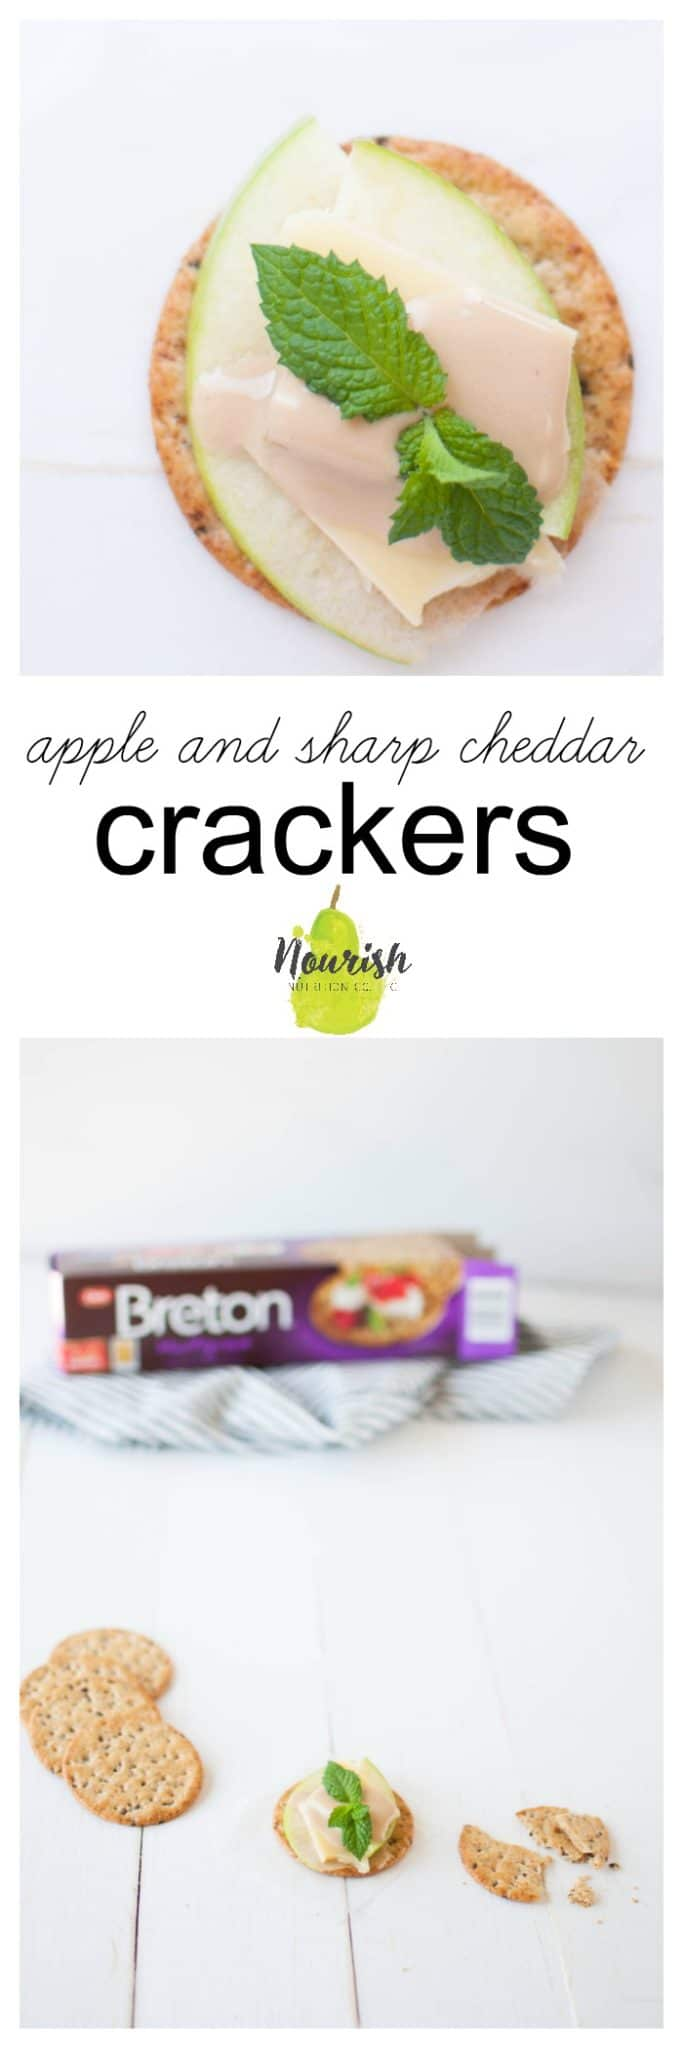 Apple and Sharp Cheddar Crackers on table with Brenton cracker box and text overlay